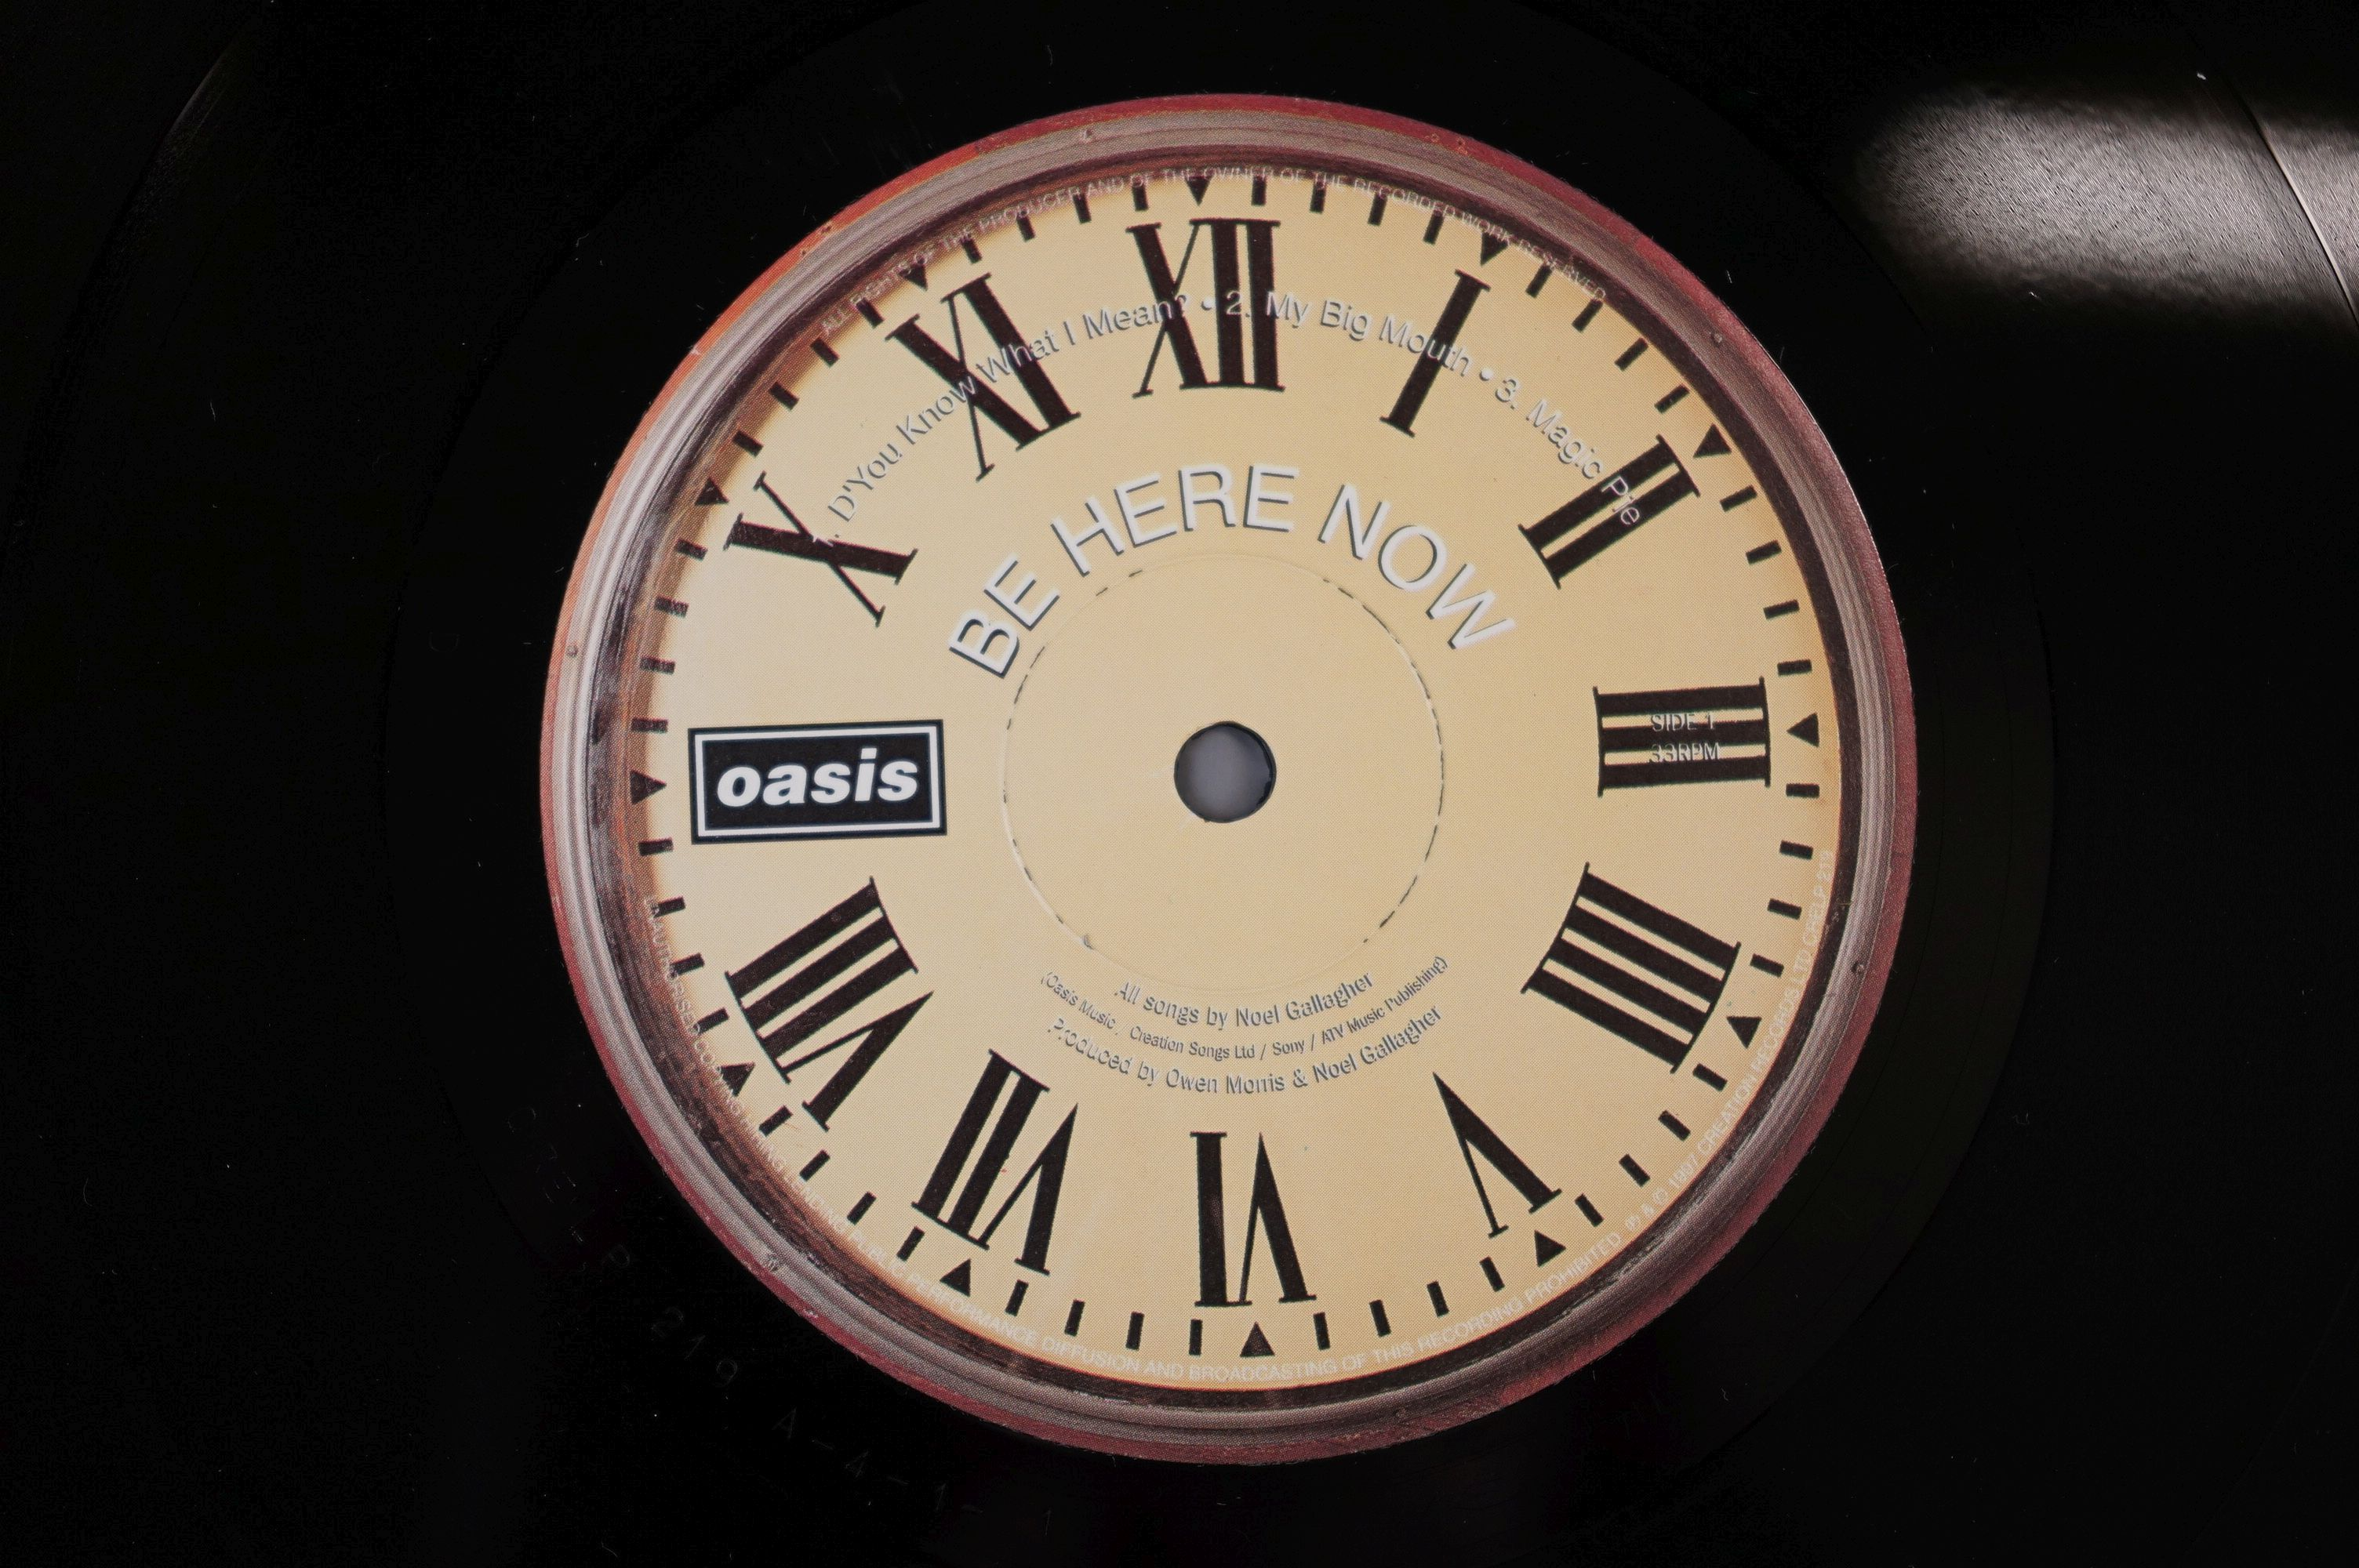 Vinyl - Oasis Be Here Now 2 LP on Creation CRELP219, sleeve ex, vinyl vg+ with a couple of marks - Image 4 of 10